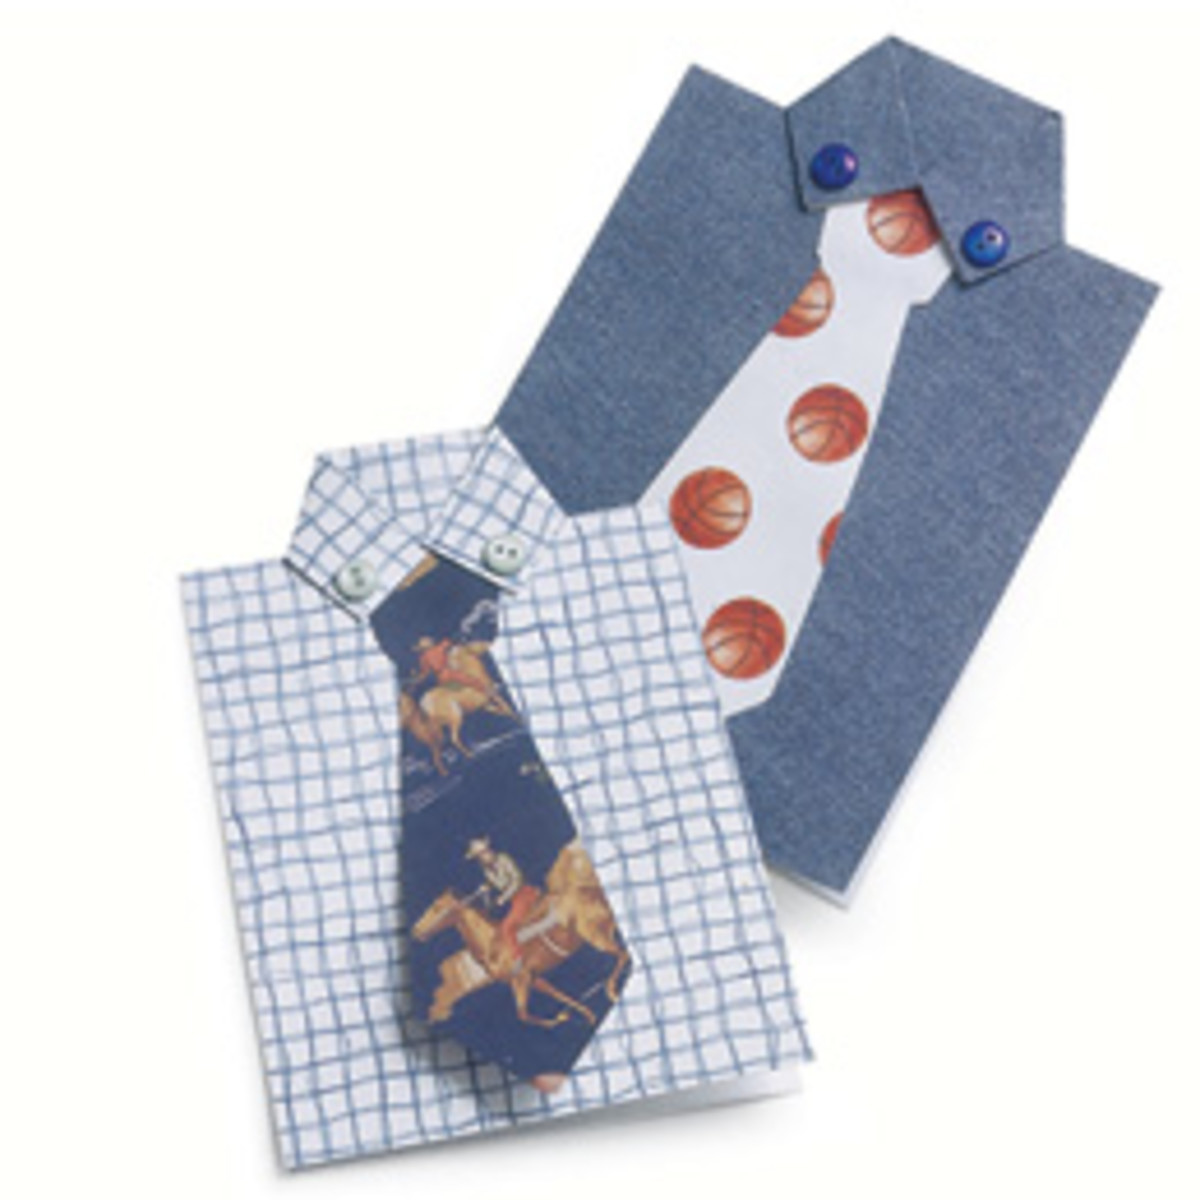 Consider customizing the tie to fit one of Dad's interests or hobbies.